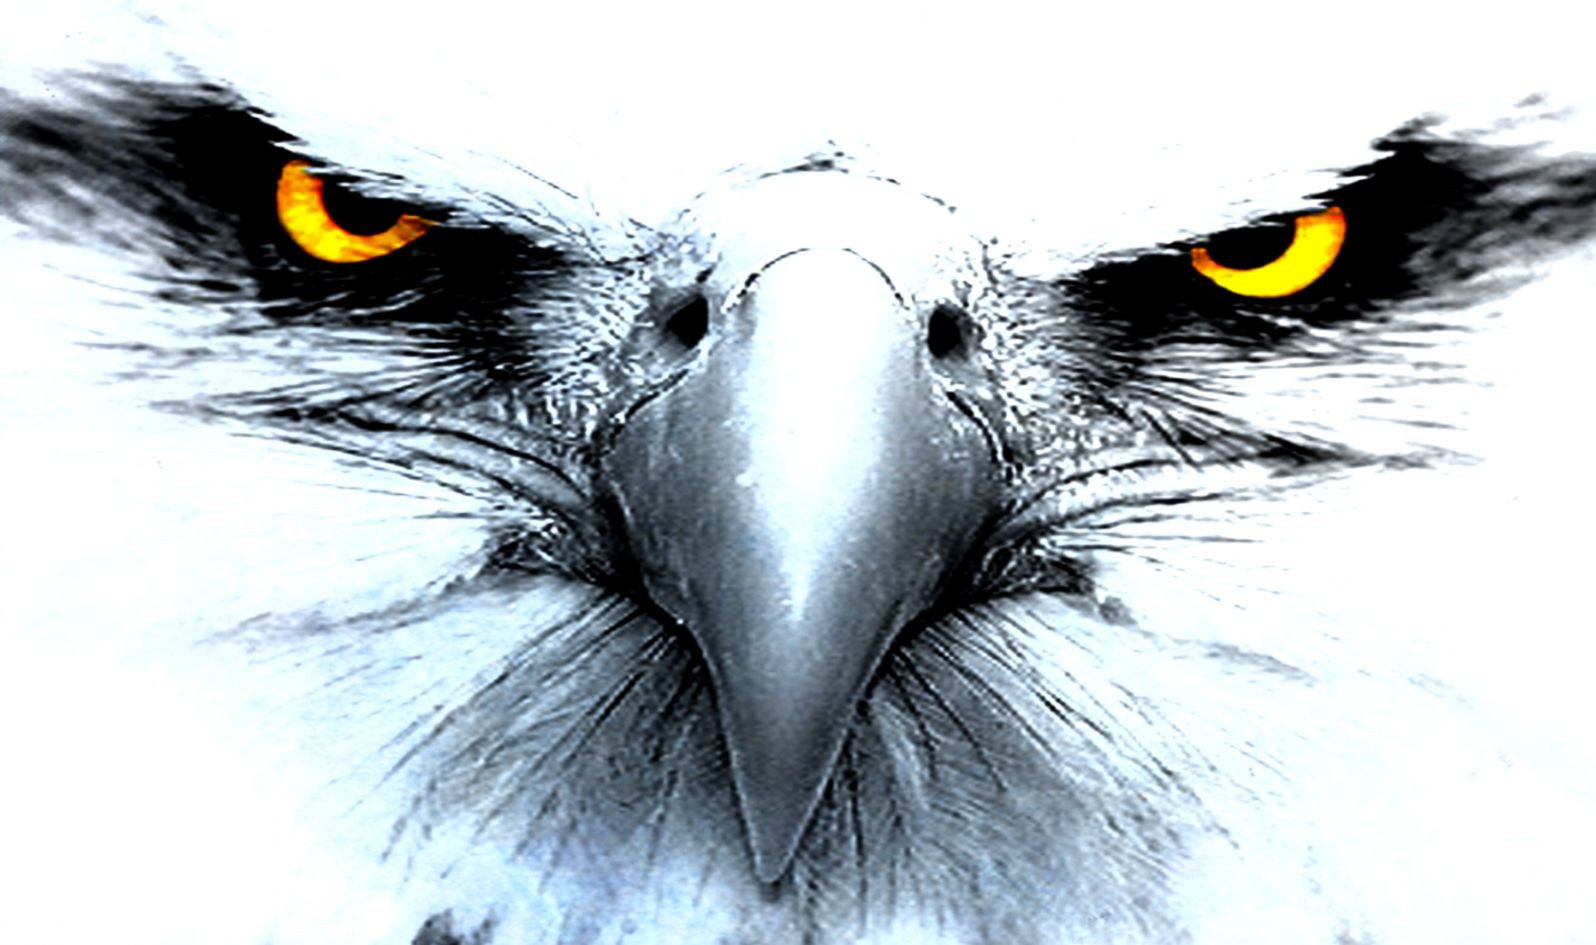 Wallpaper Hd 1080p Black And White Eagle Hd Wallpapers